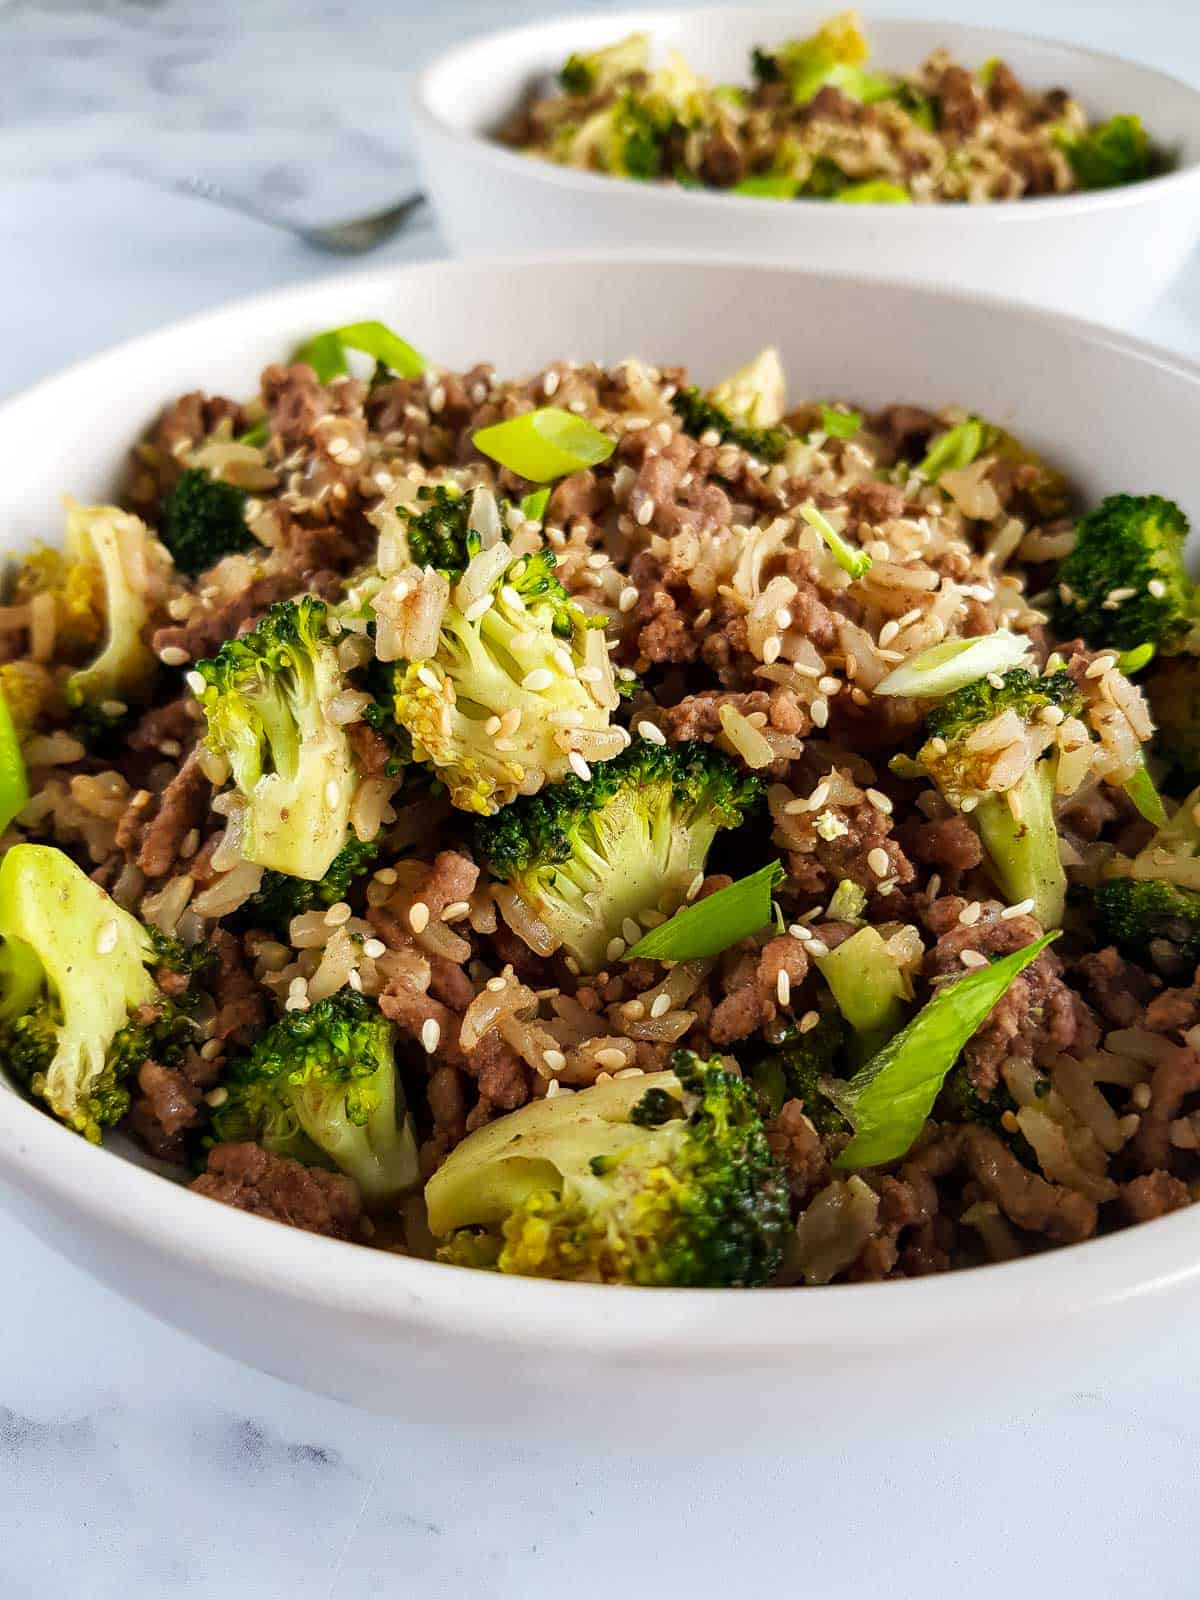 Close up of a bowl of ground beef and broccoli stir fry.